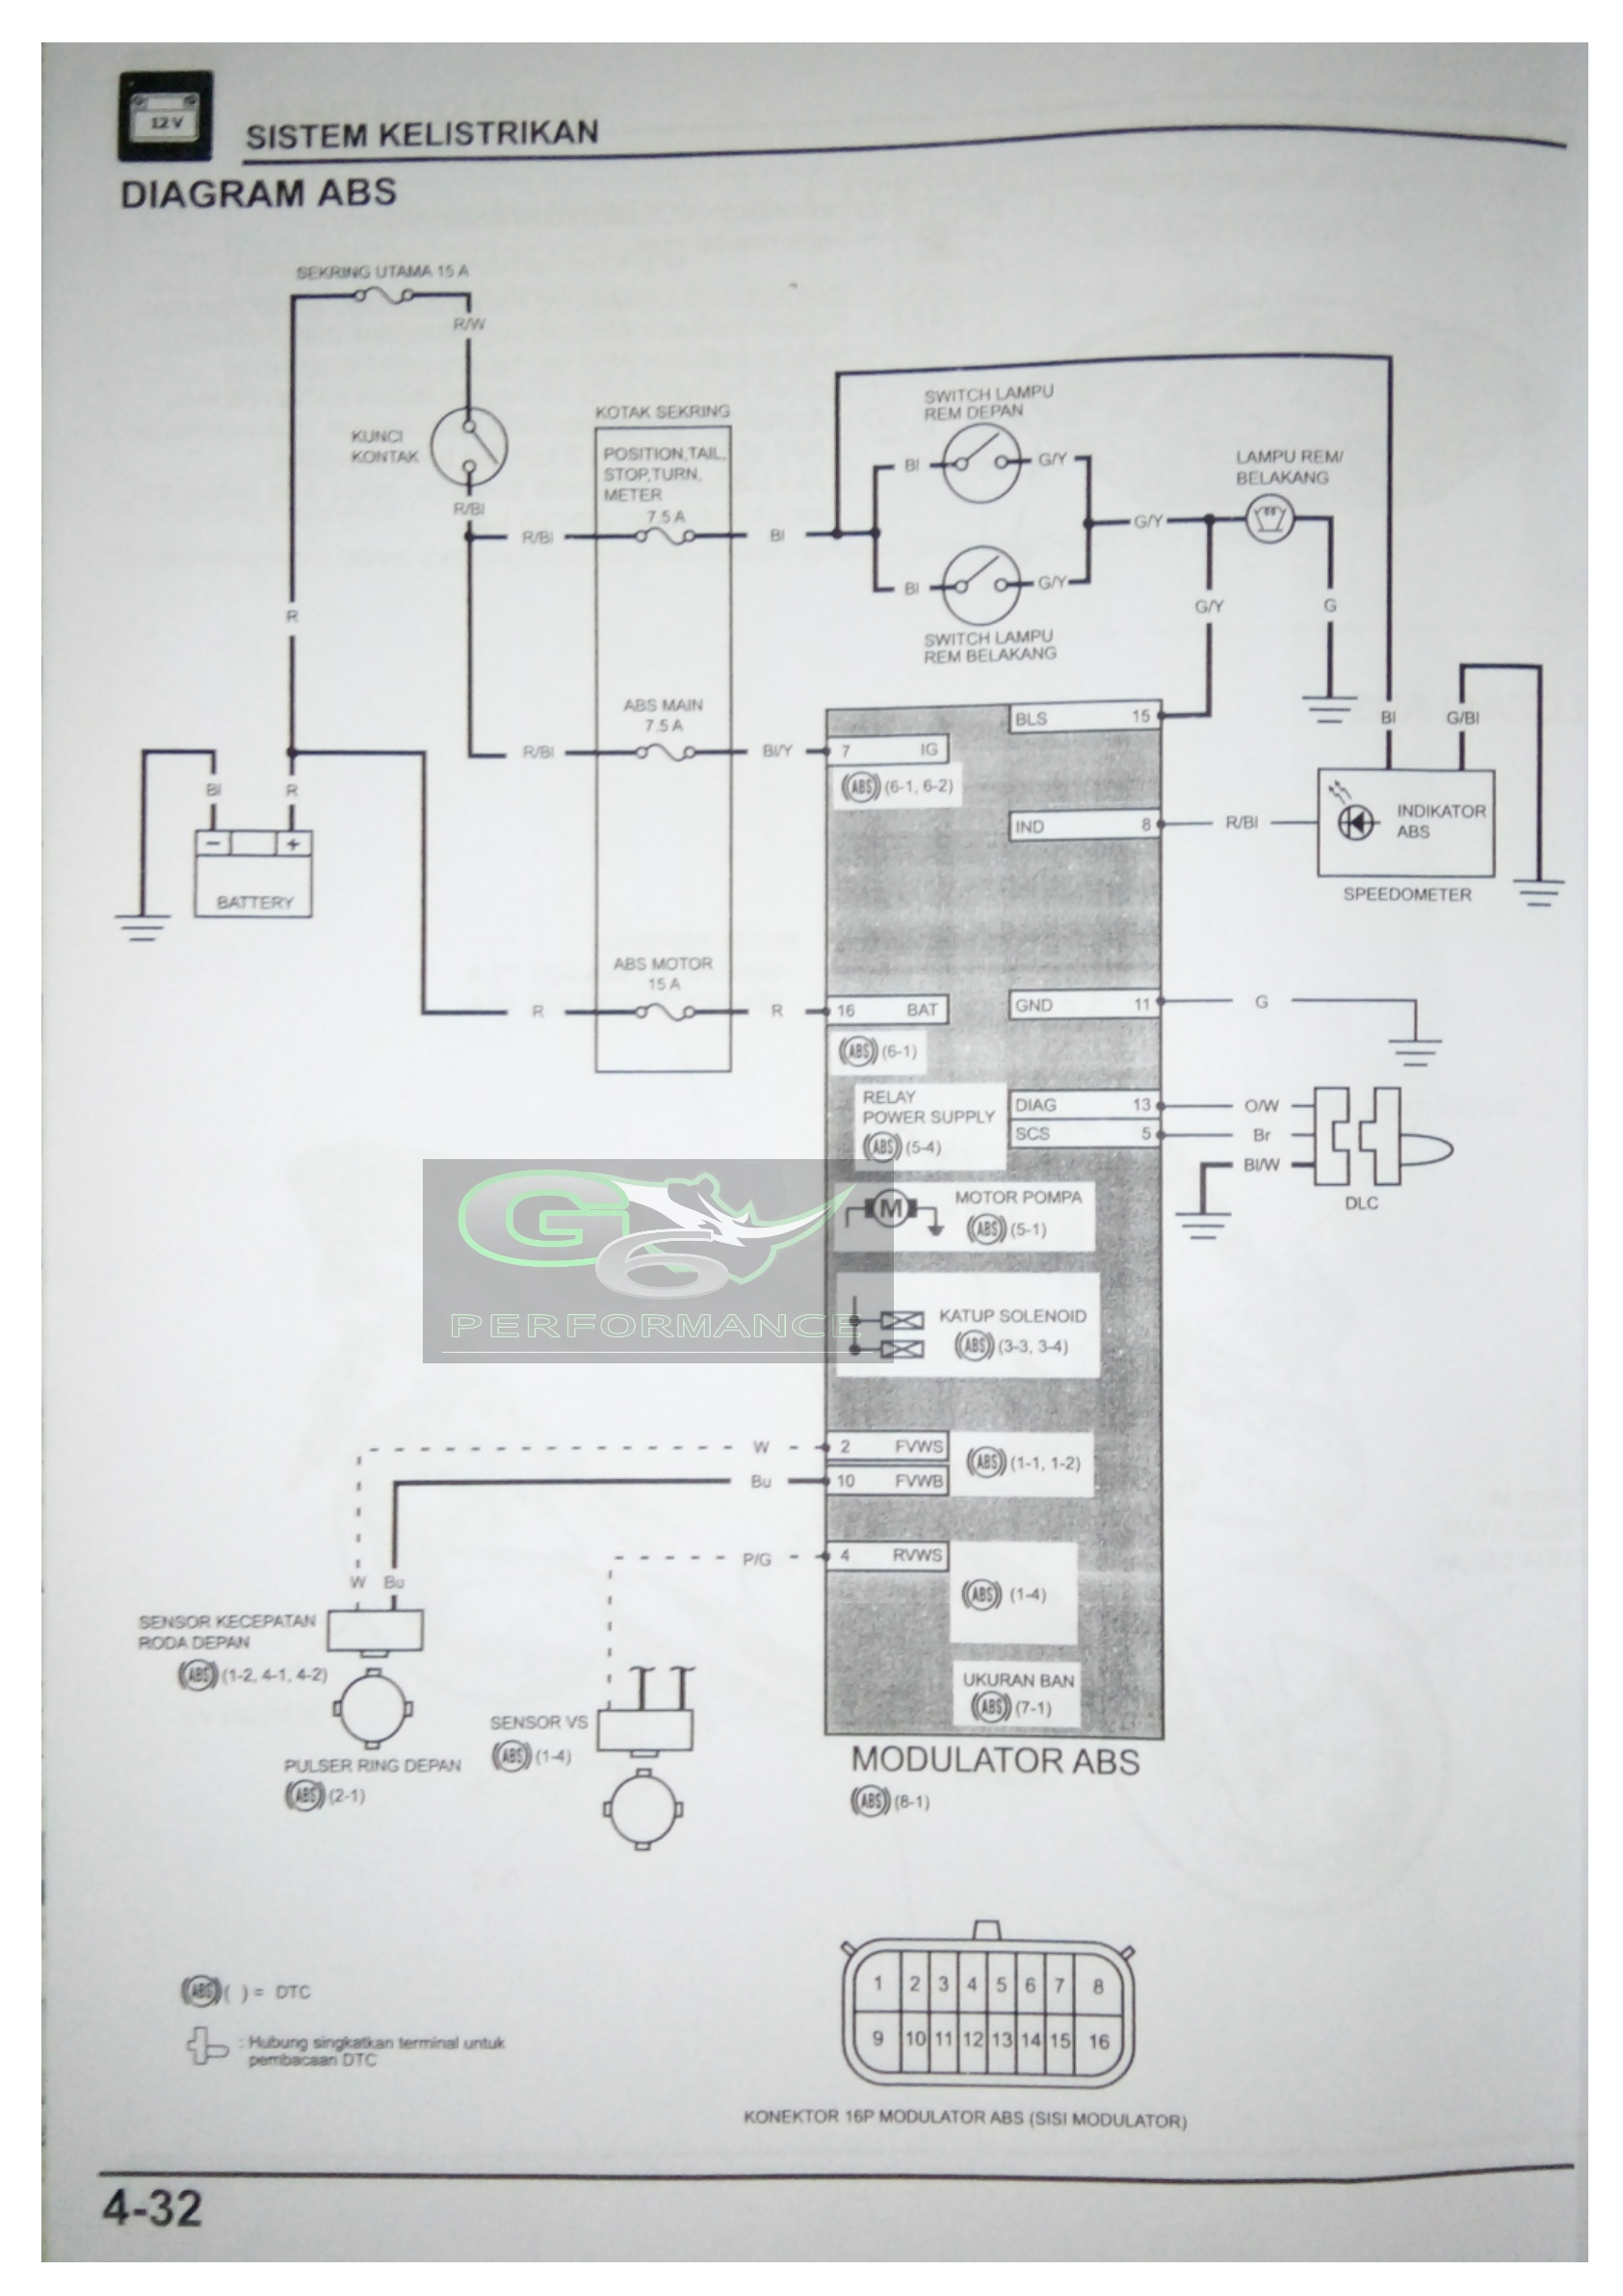 medium resolution of electric wiring system diagram honda new pcx 150 2018 gisix s blog wiring diagram honda pcx 150 wiring diagram honda pcx